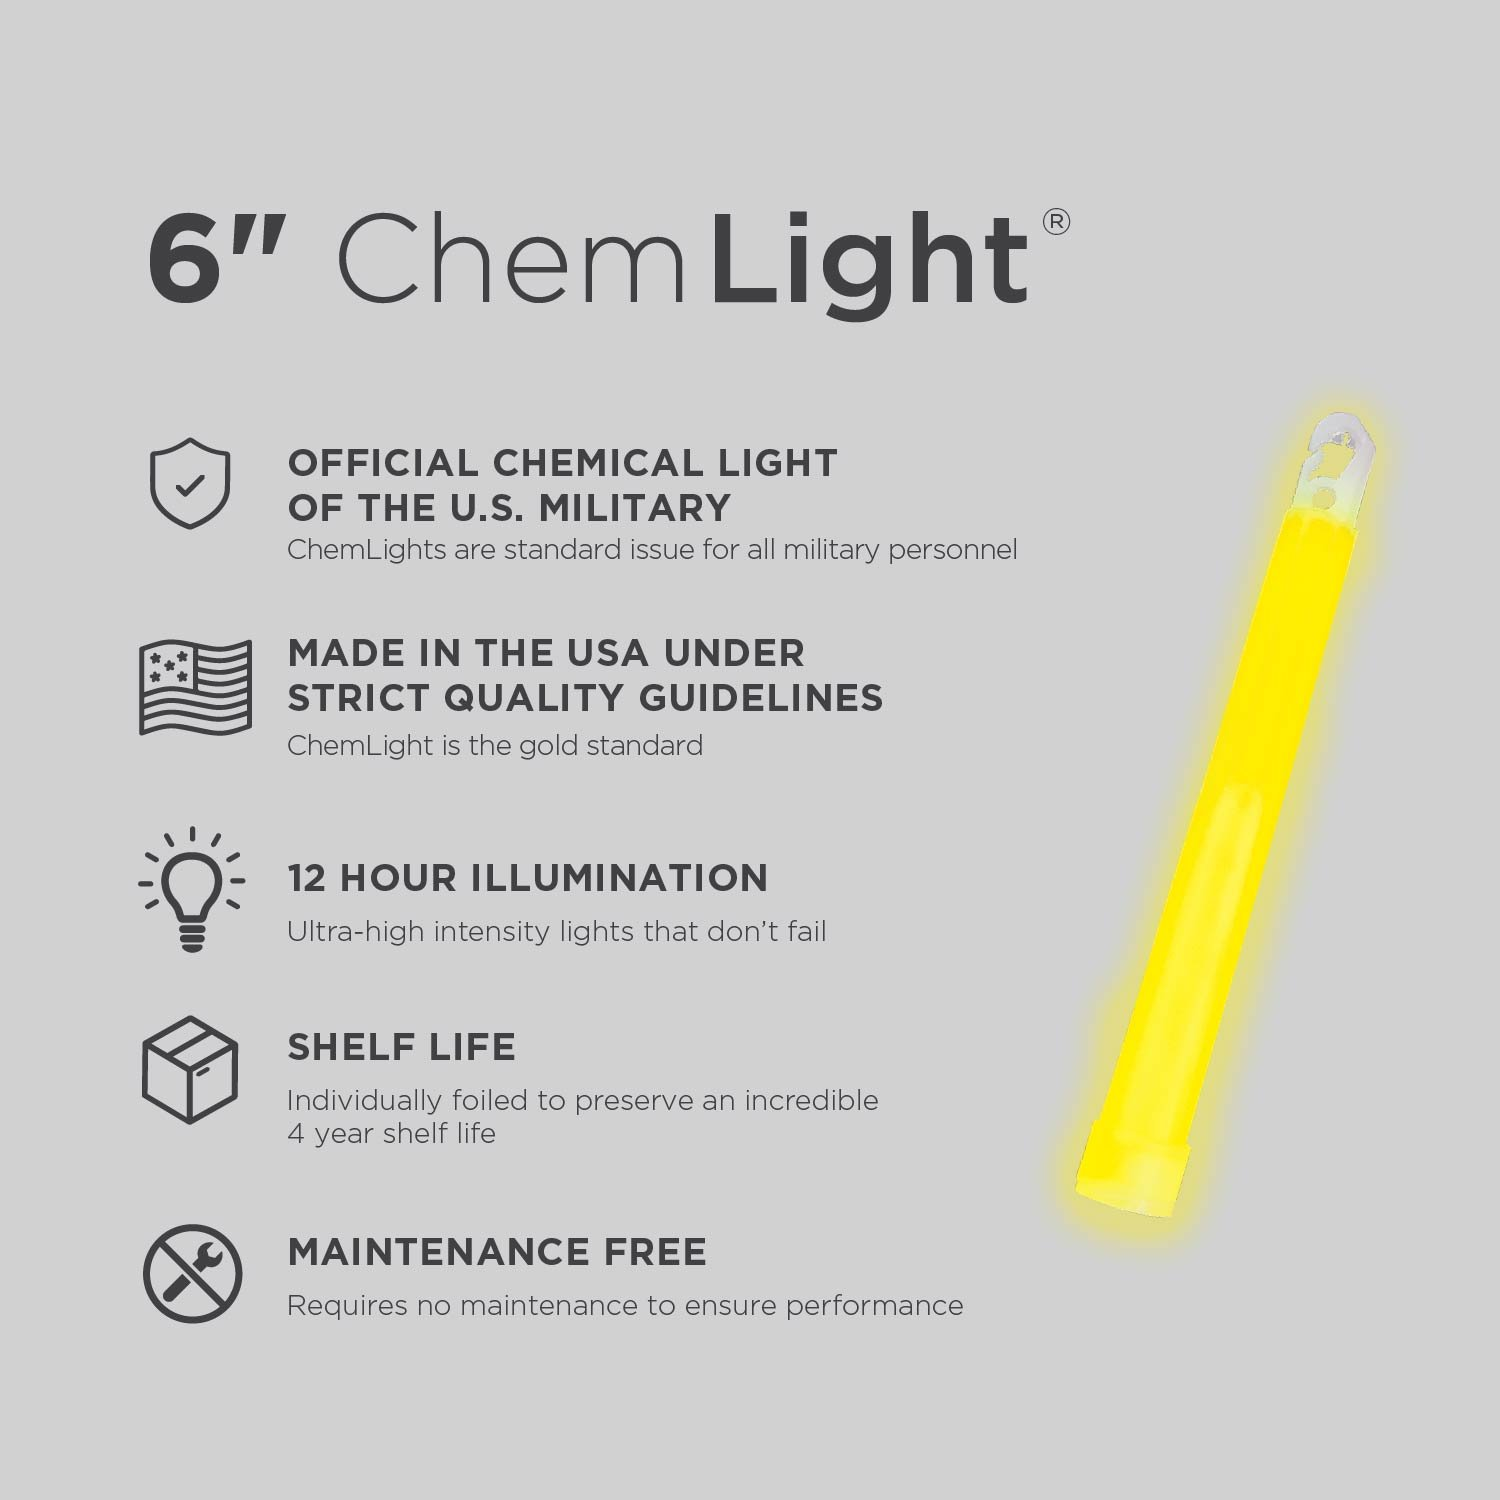 Ideal as Emergency or Safety Lights Cyalume ChemLight Military Grade Chemical Light Sticks Standard Issue for U.S Hiking or Camping and Much More Military Personnel 12 Hour Duration Light Sticks Provide Intense Light for Tactical Applications